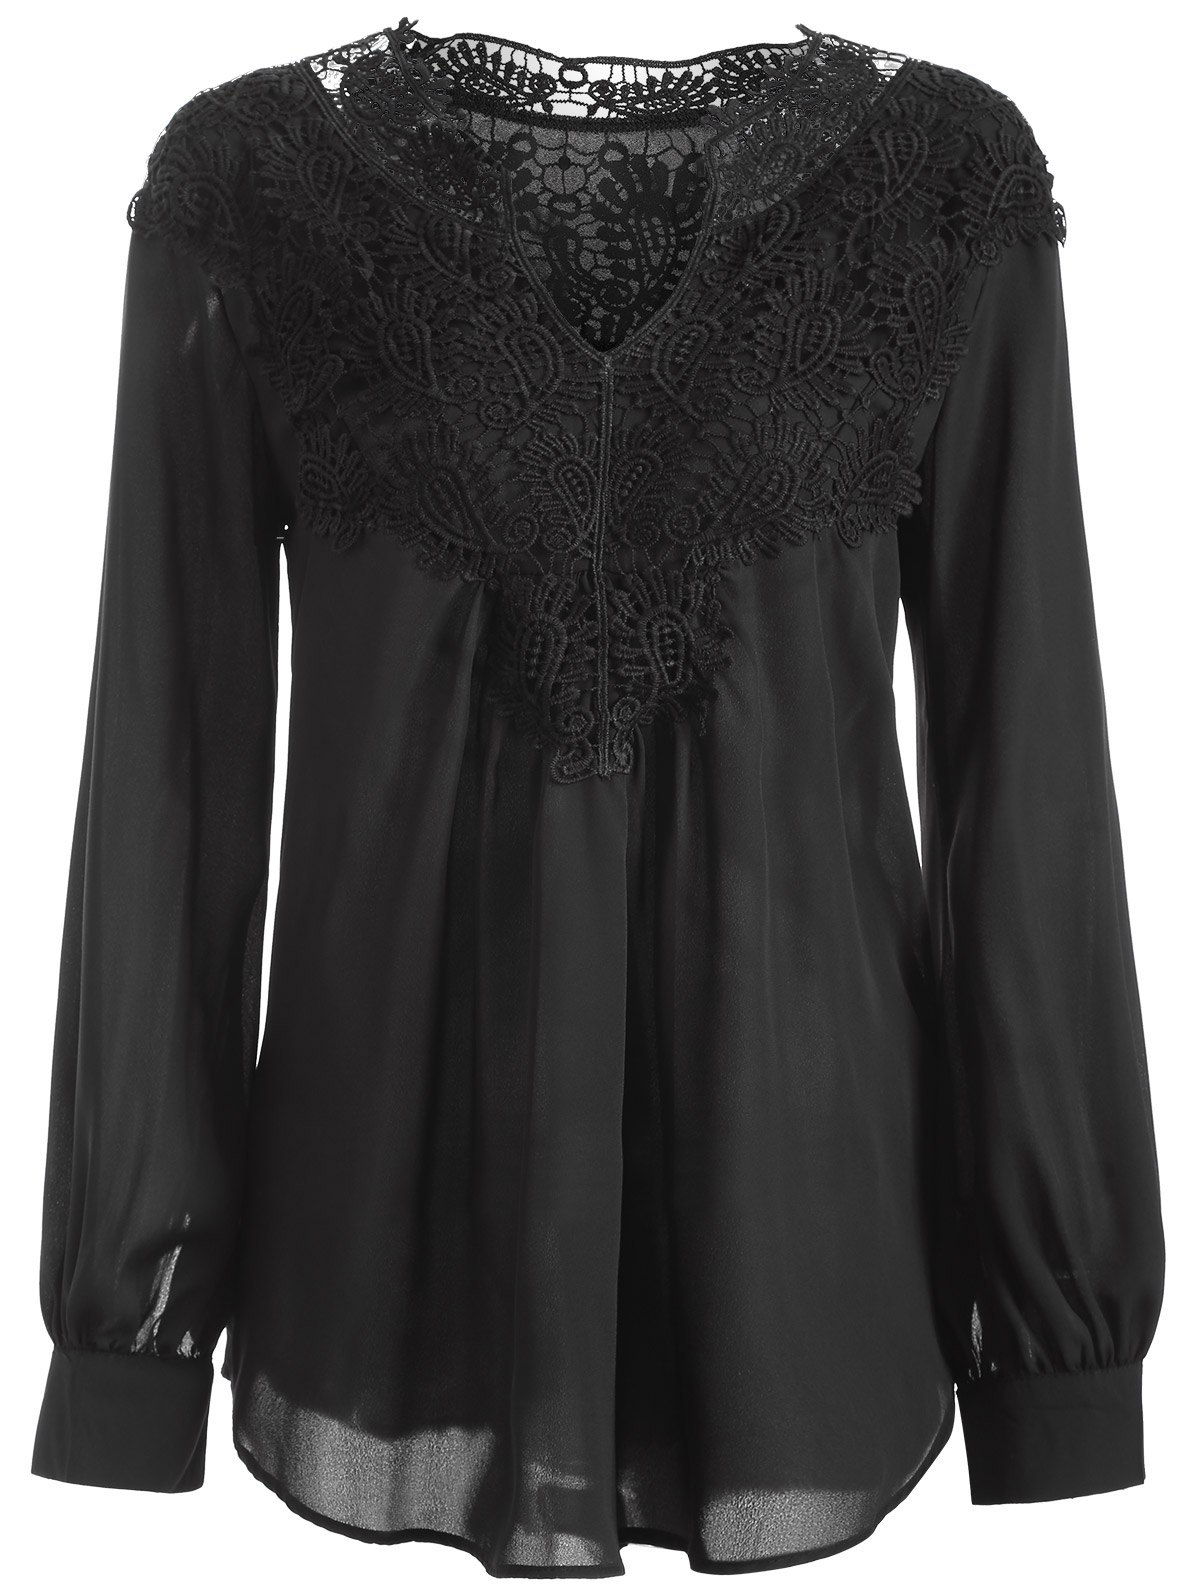 Long Sleeve Crochet Detail Lace Tunic Blouse - BLACK S